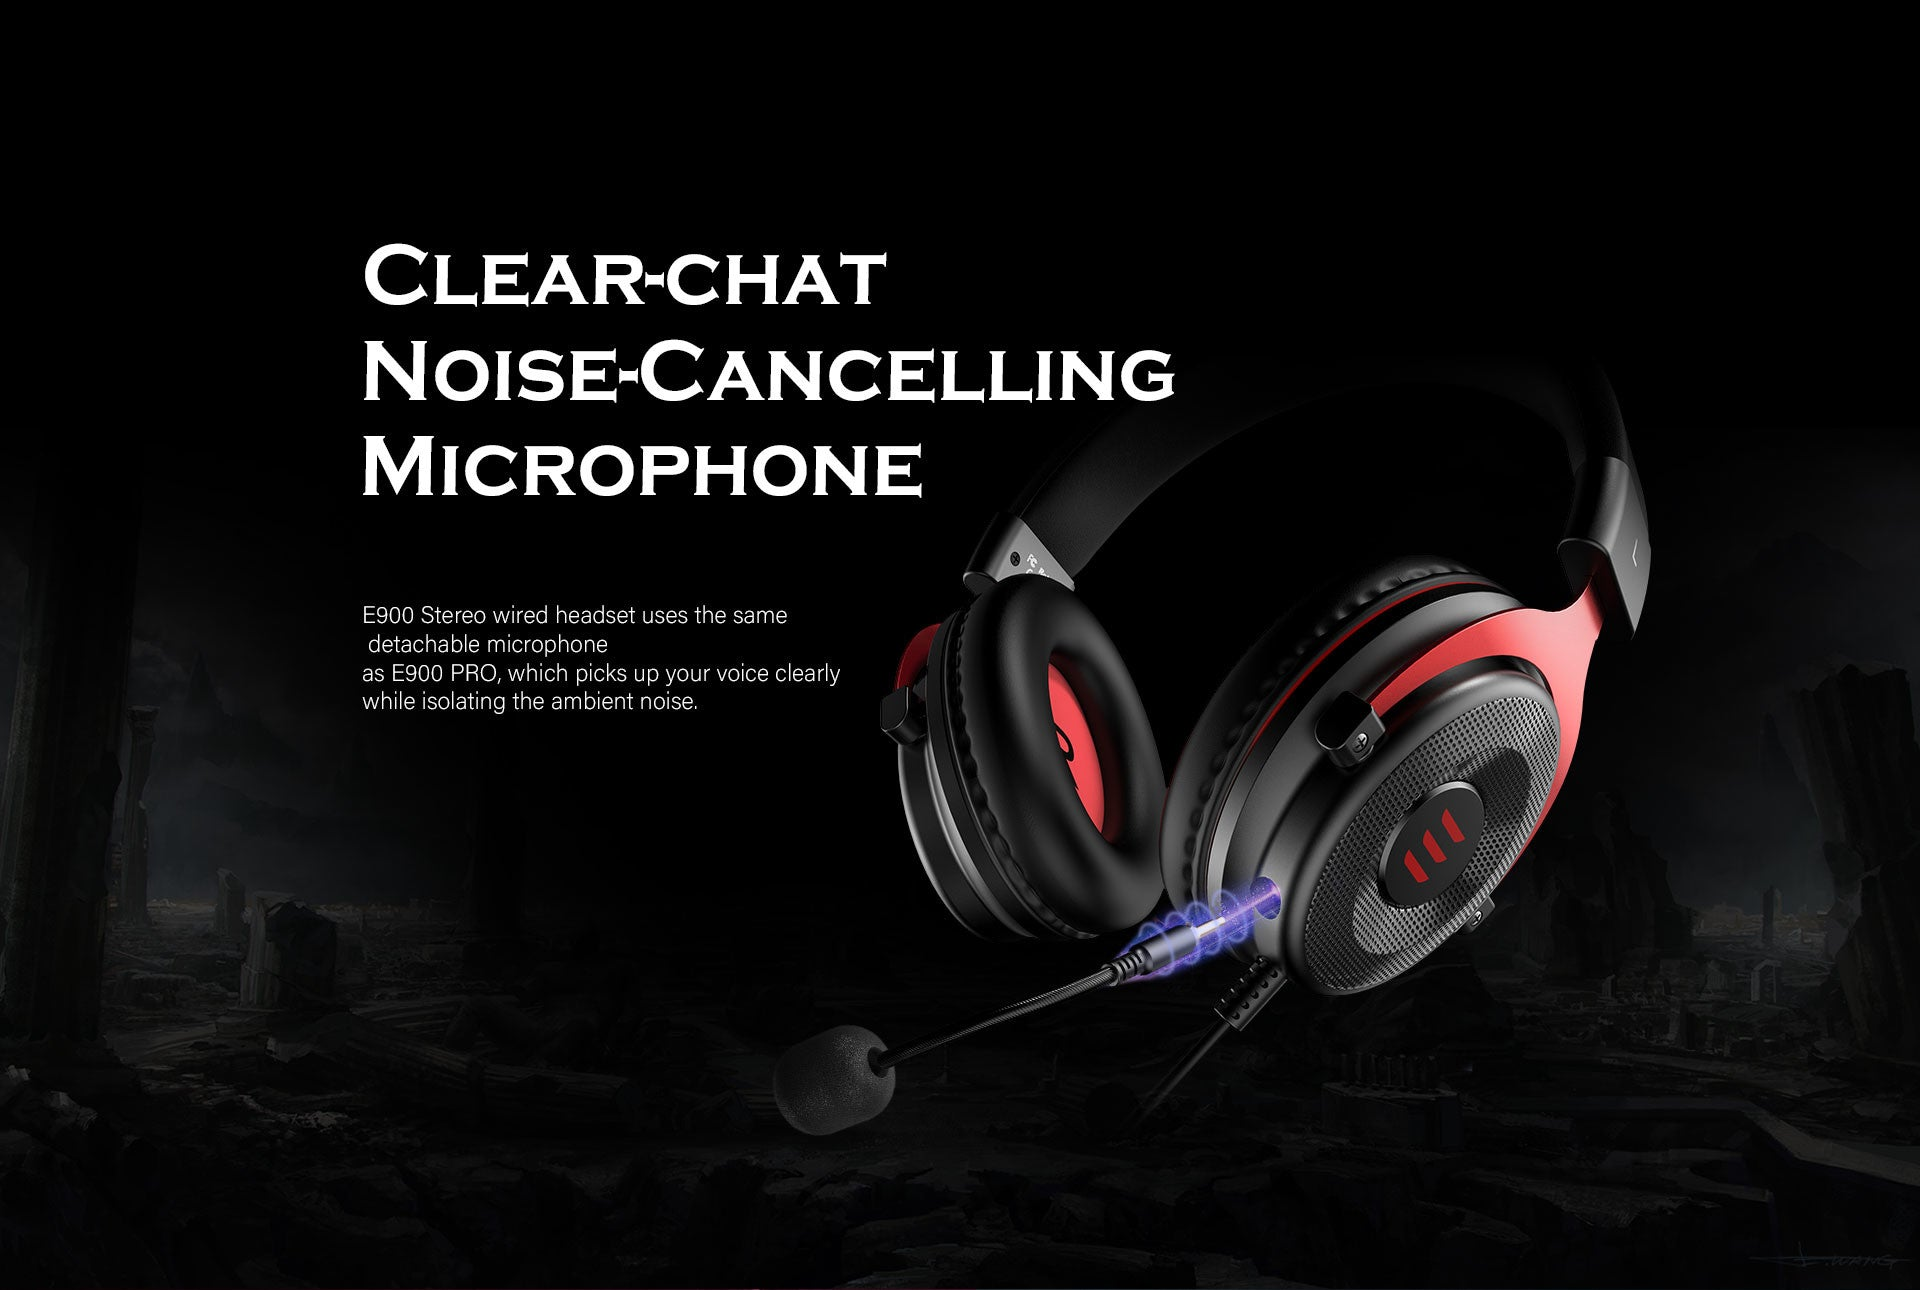 Clear-chat Noise-Cancelling Microphone